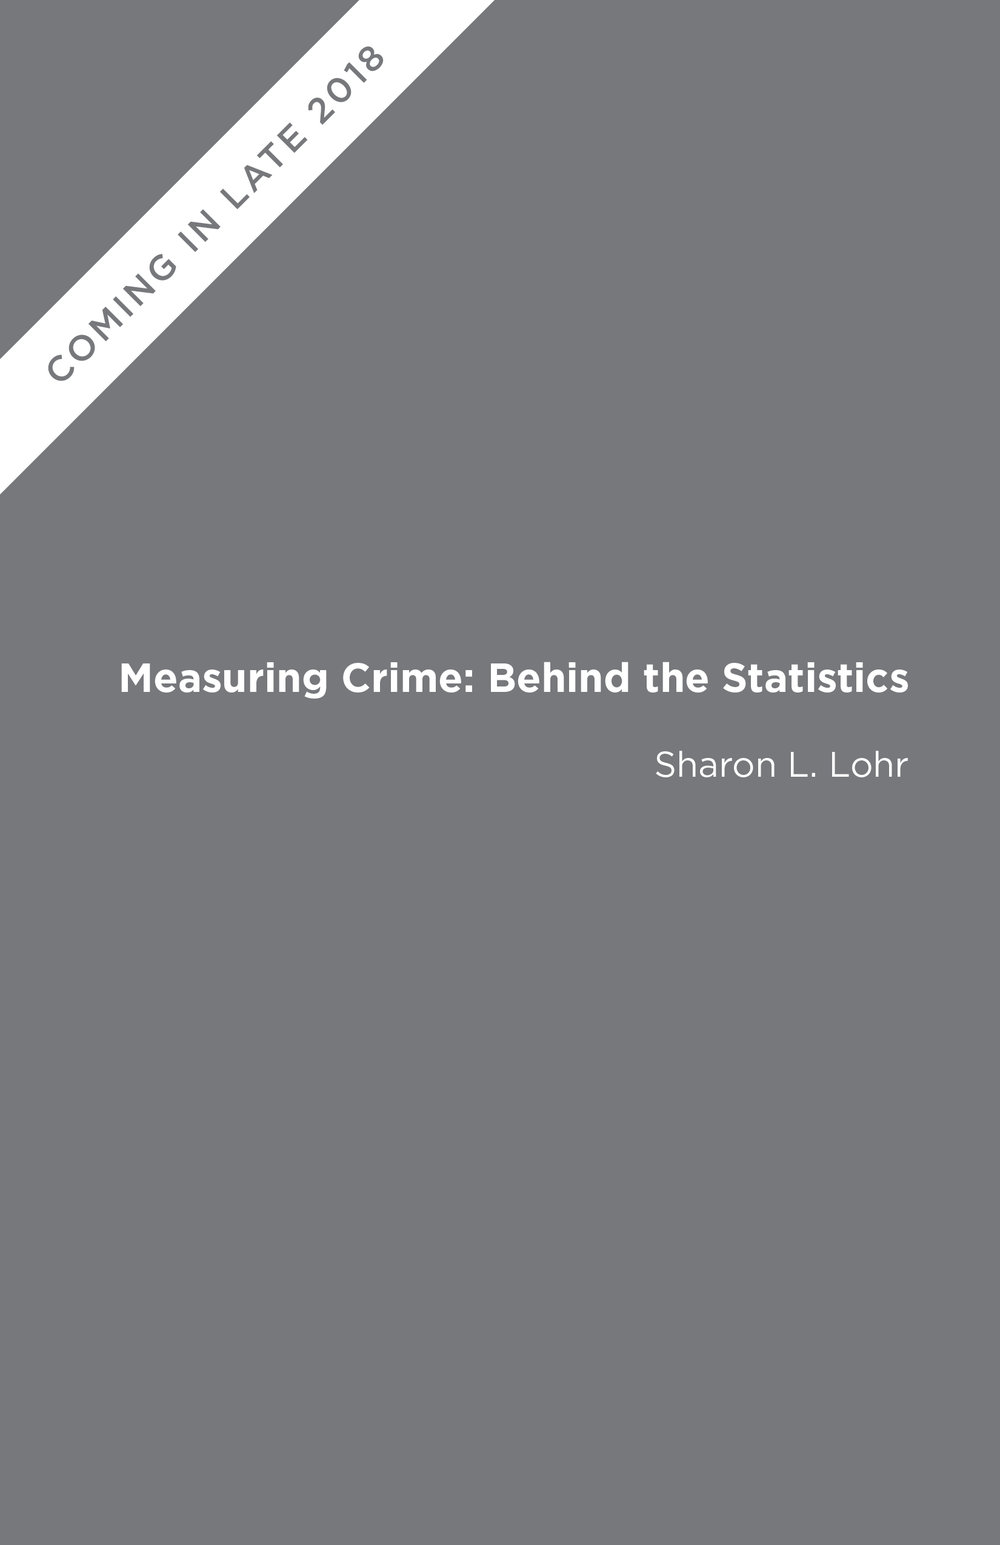 measuring crime book cover.jpg